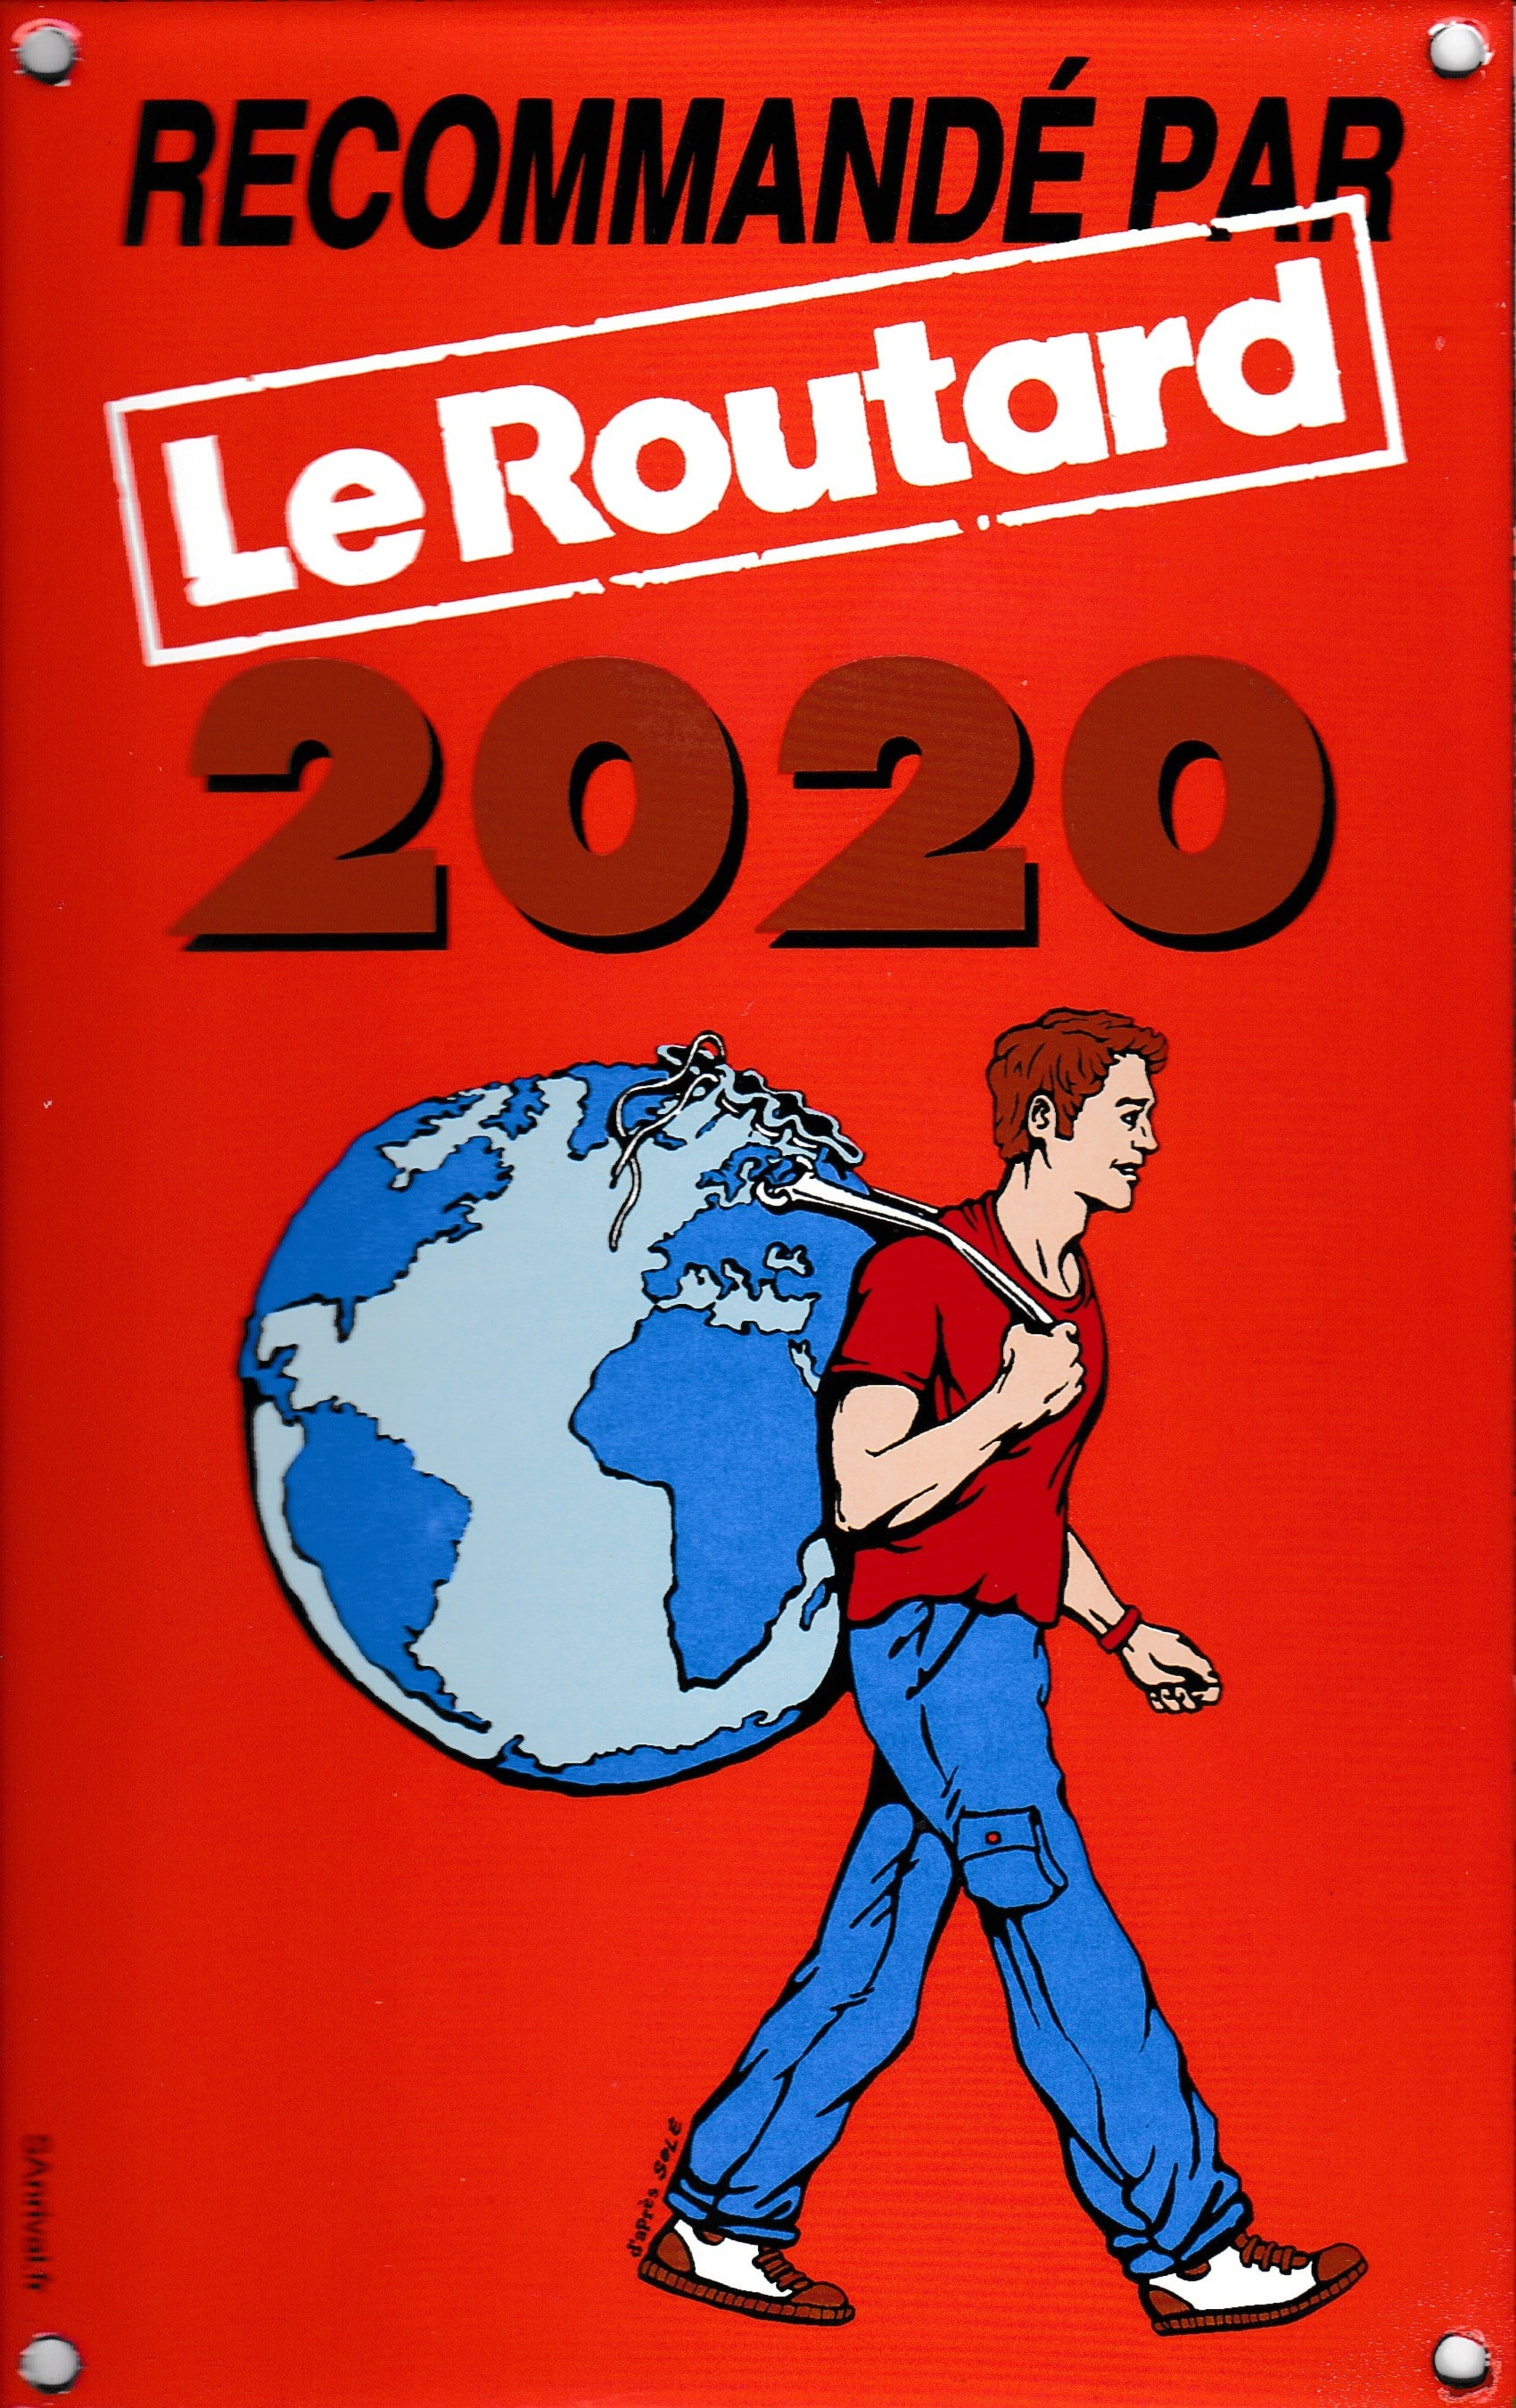 Routard2020